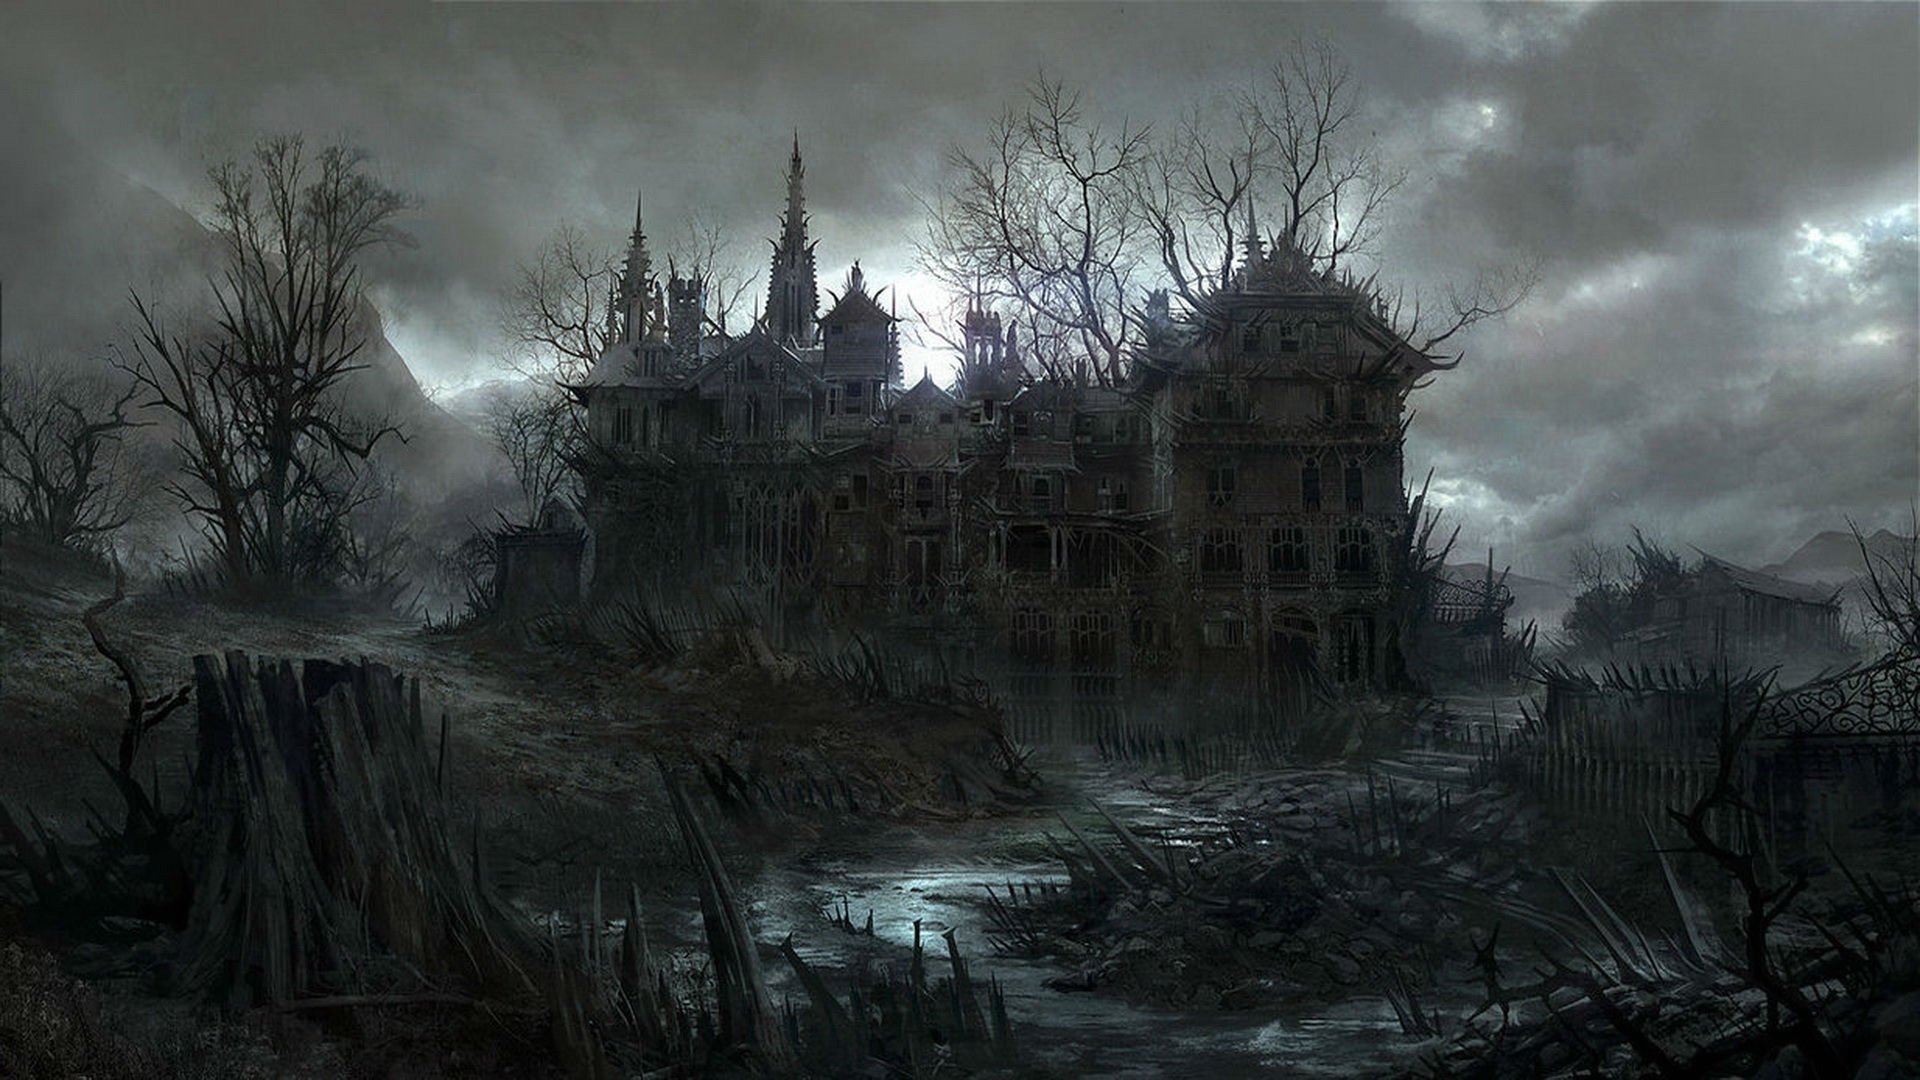 Beautiful Wallpaper Horse Creepy - 1870871-1920x1080-halloween_dark_haunted_house_spooky_1920x1080  Pic_33308.jpg